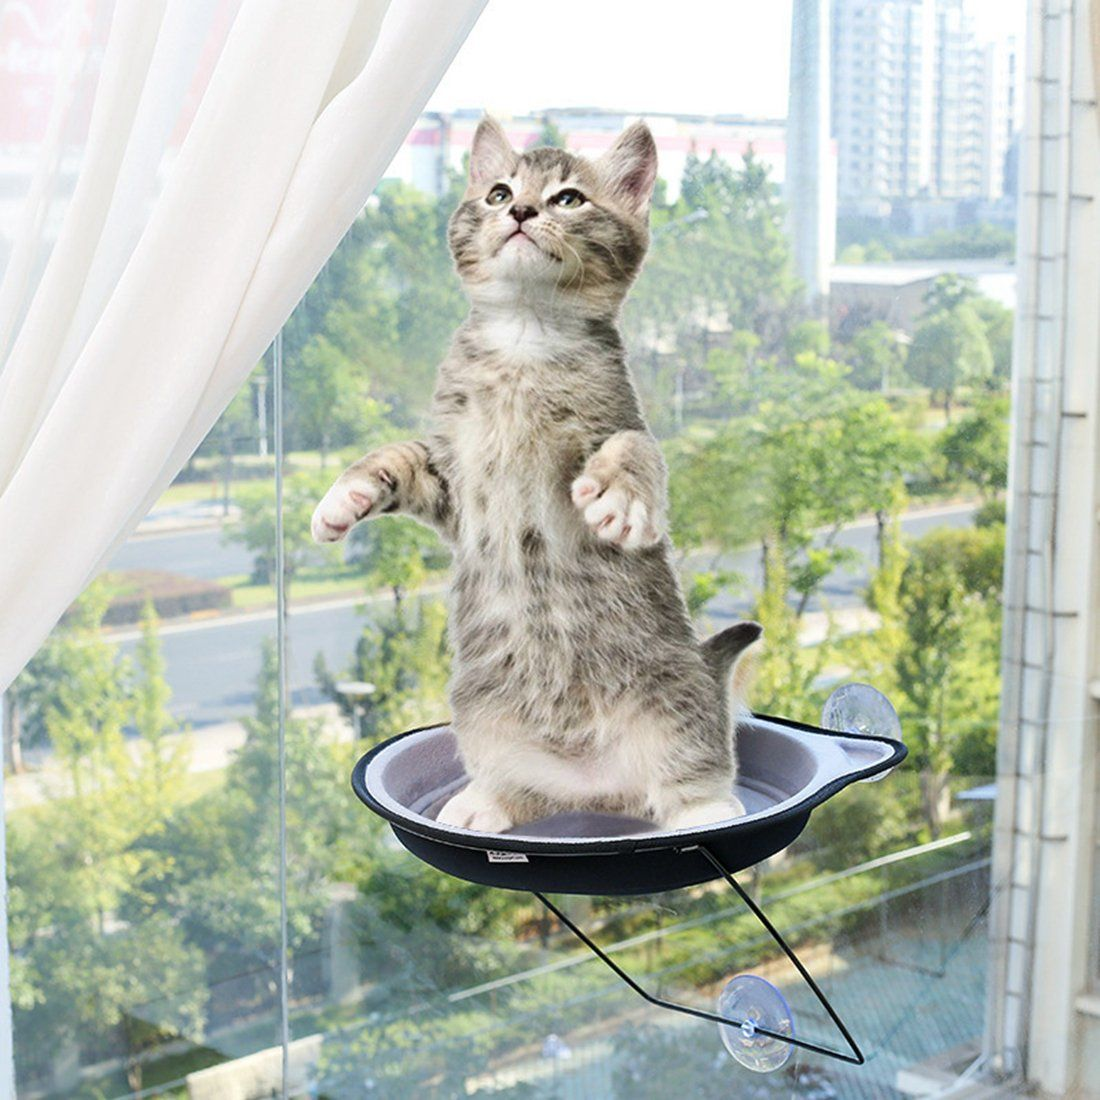 Cat Bed Alotm Cat Window Perch Kitty Window Mount Bed Seat With Suction Cups Hold Up To 33lbs Spacing Saving Hammock Safe Pet Sunn Cat Bed Warm Bed Cat Hammock